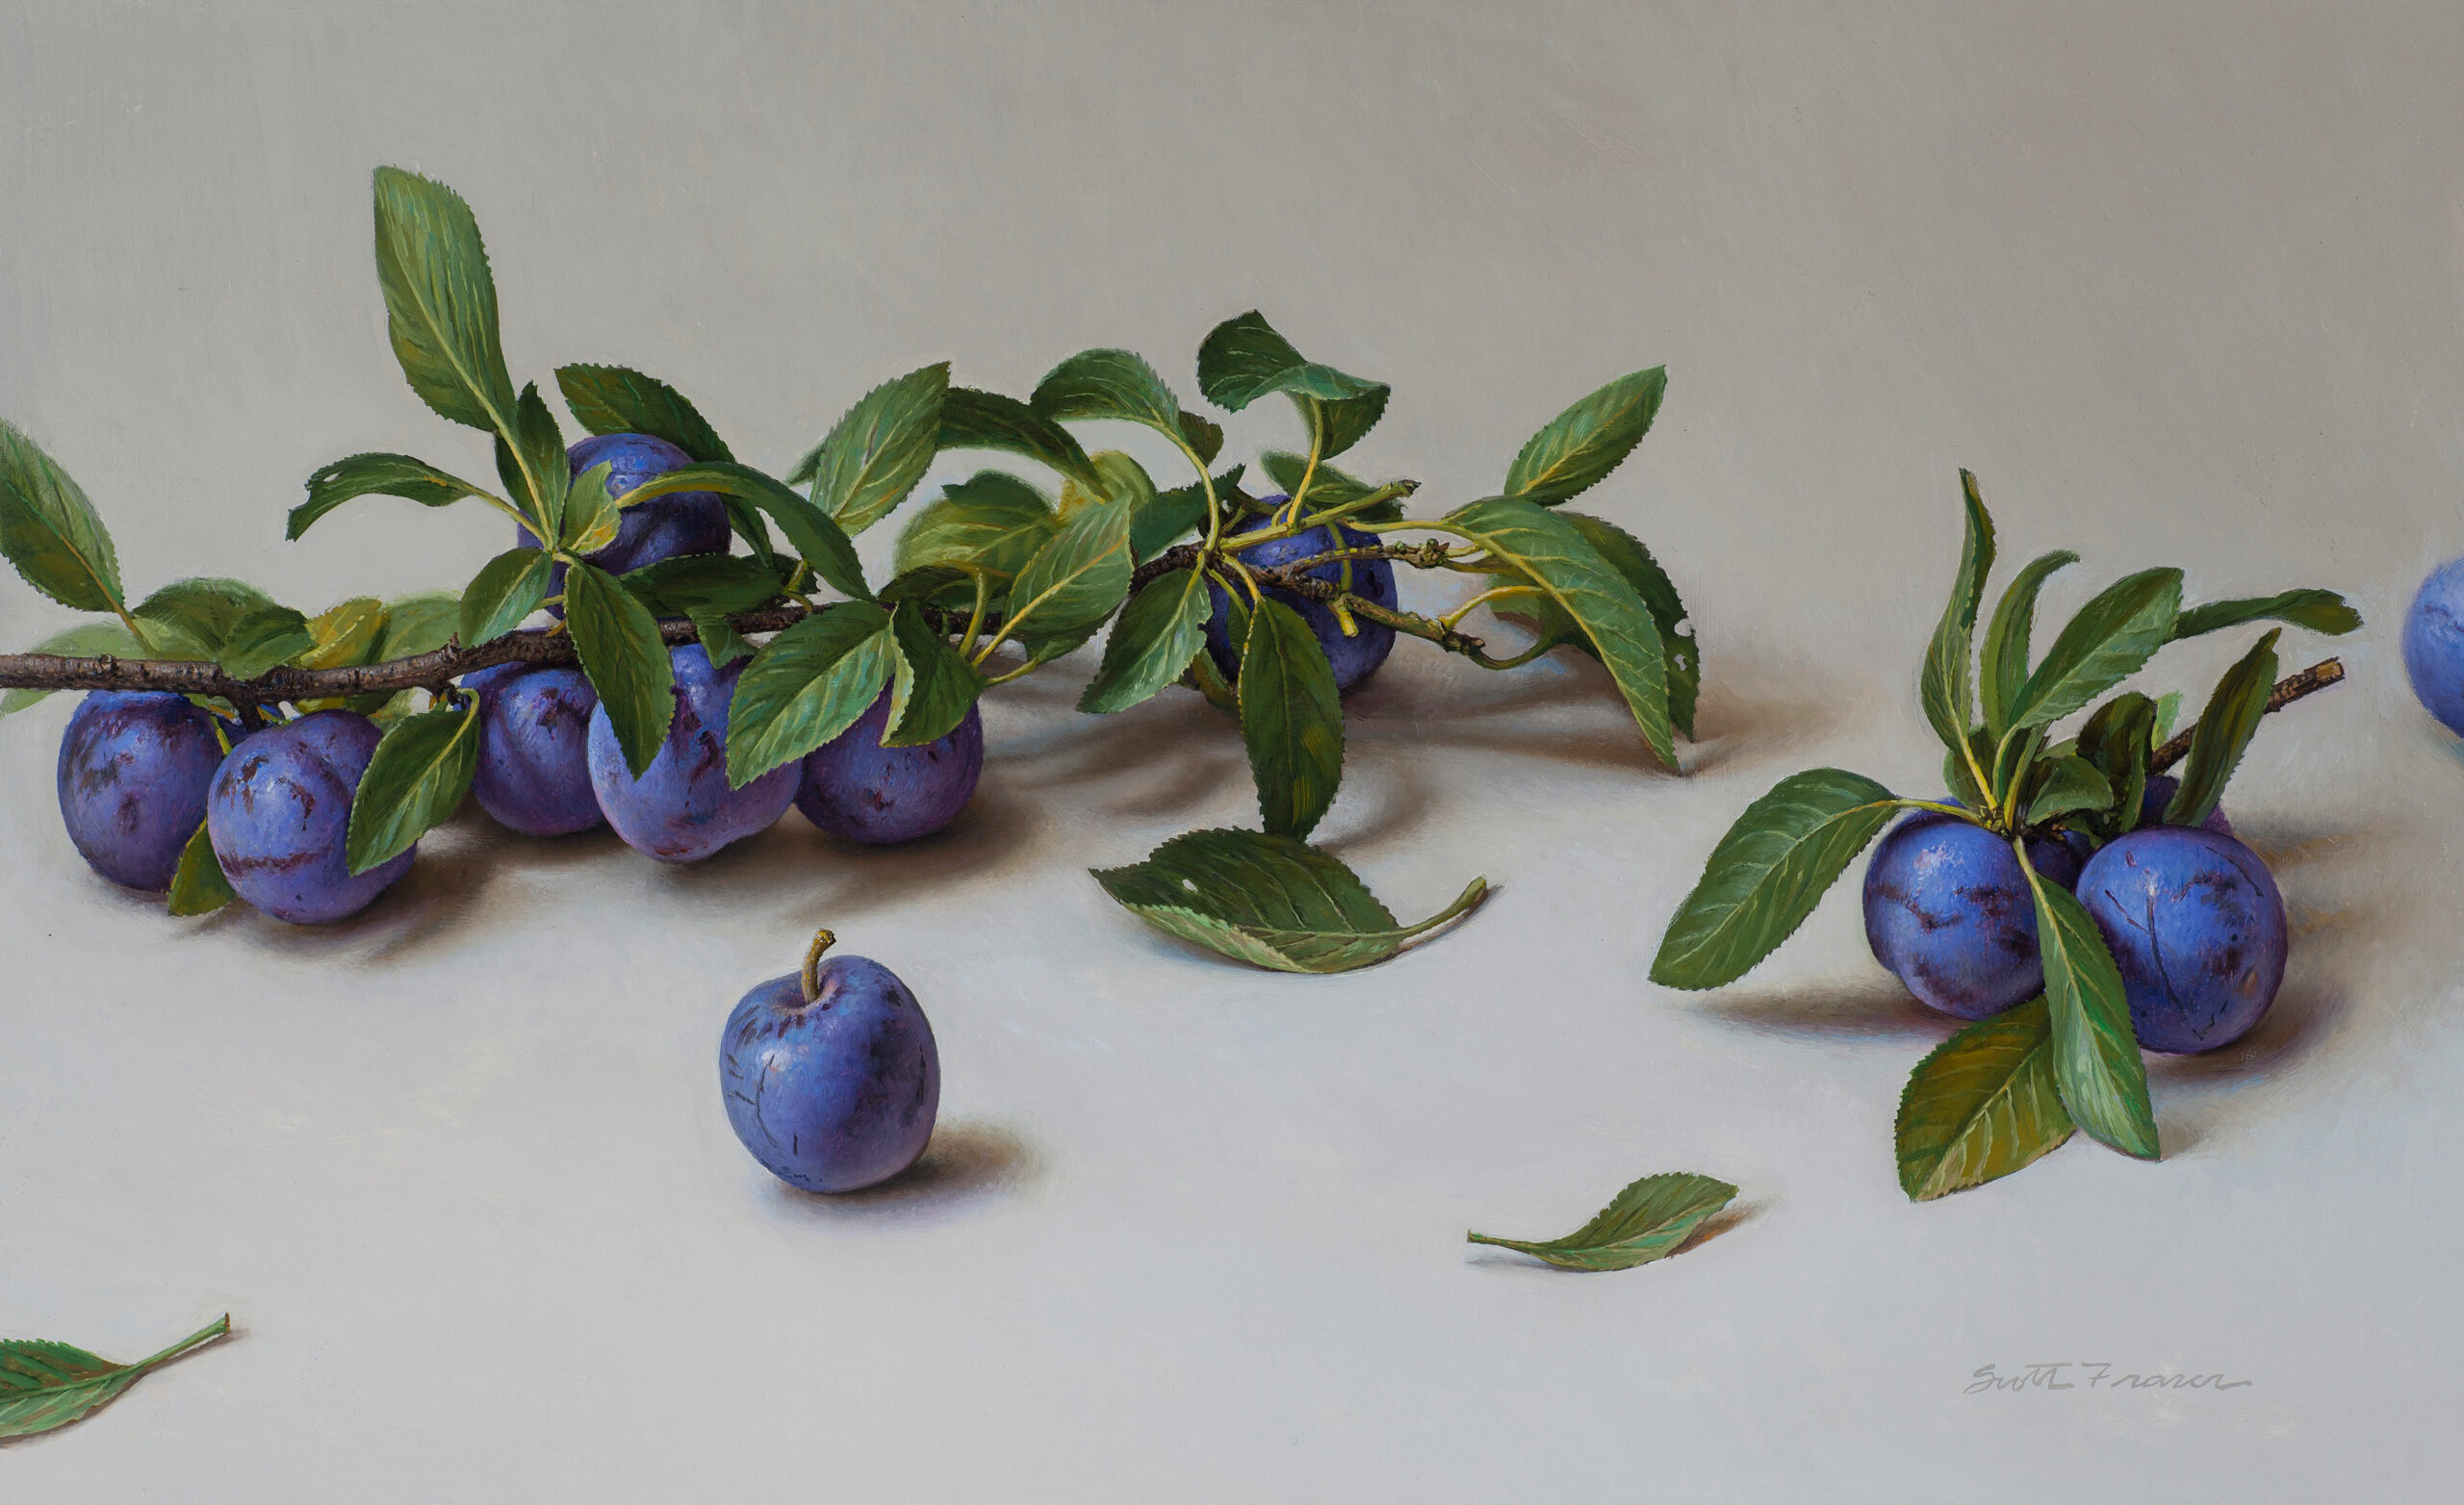 Fraser,-Scott,-Arrowleaf-Plums,-Oil-on-board,-11-x-18,-$14,000